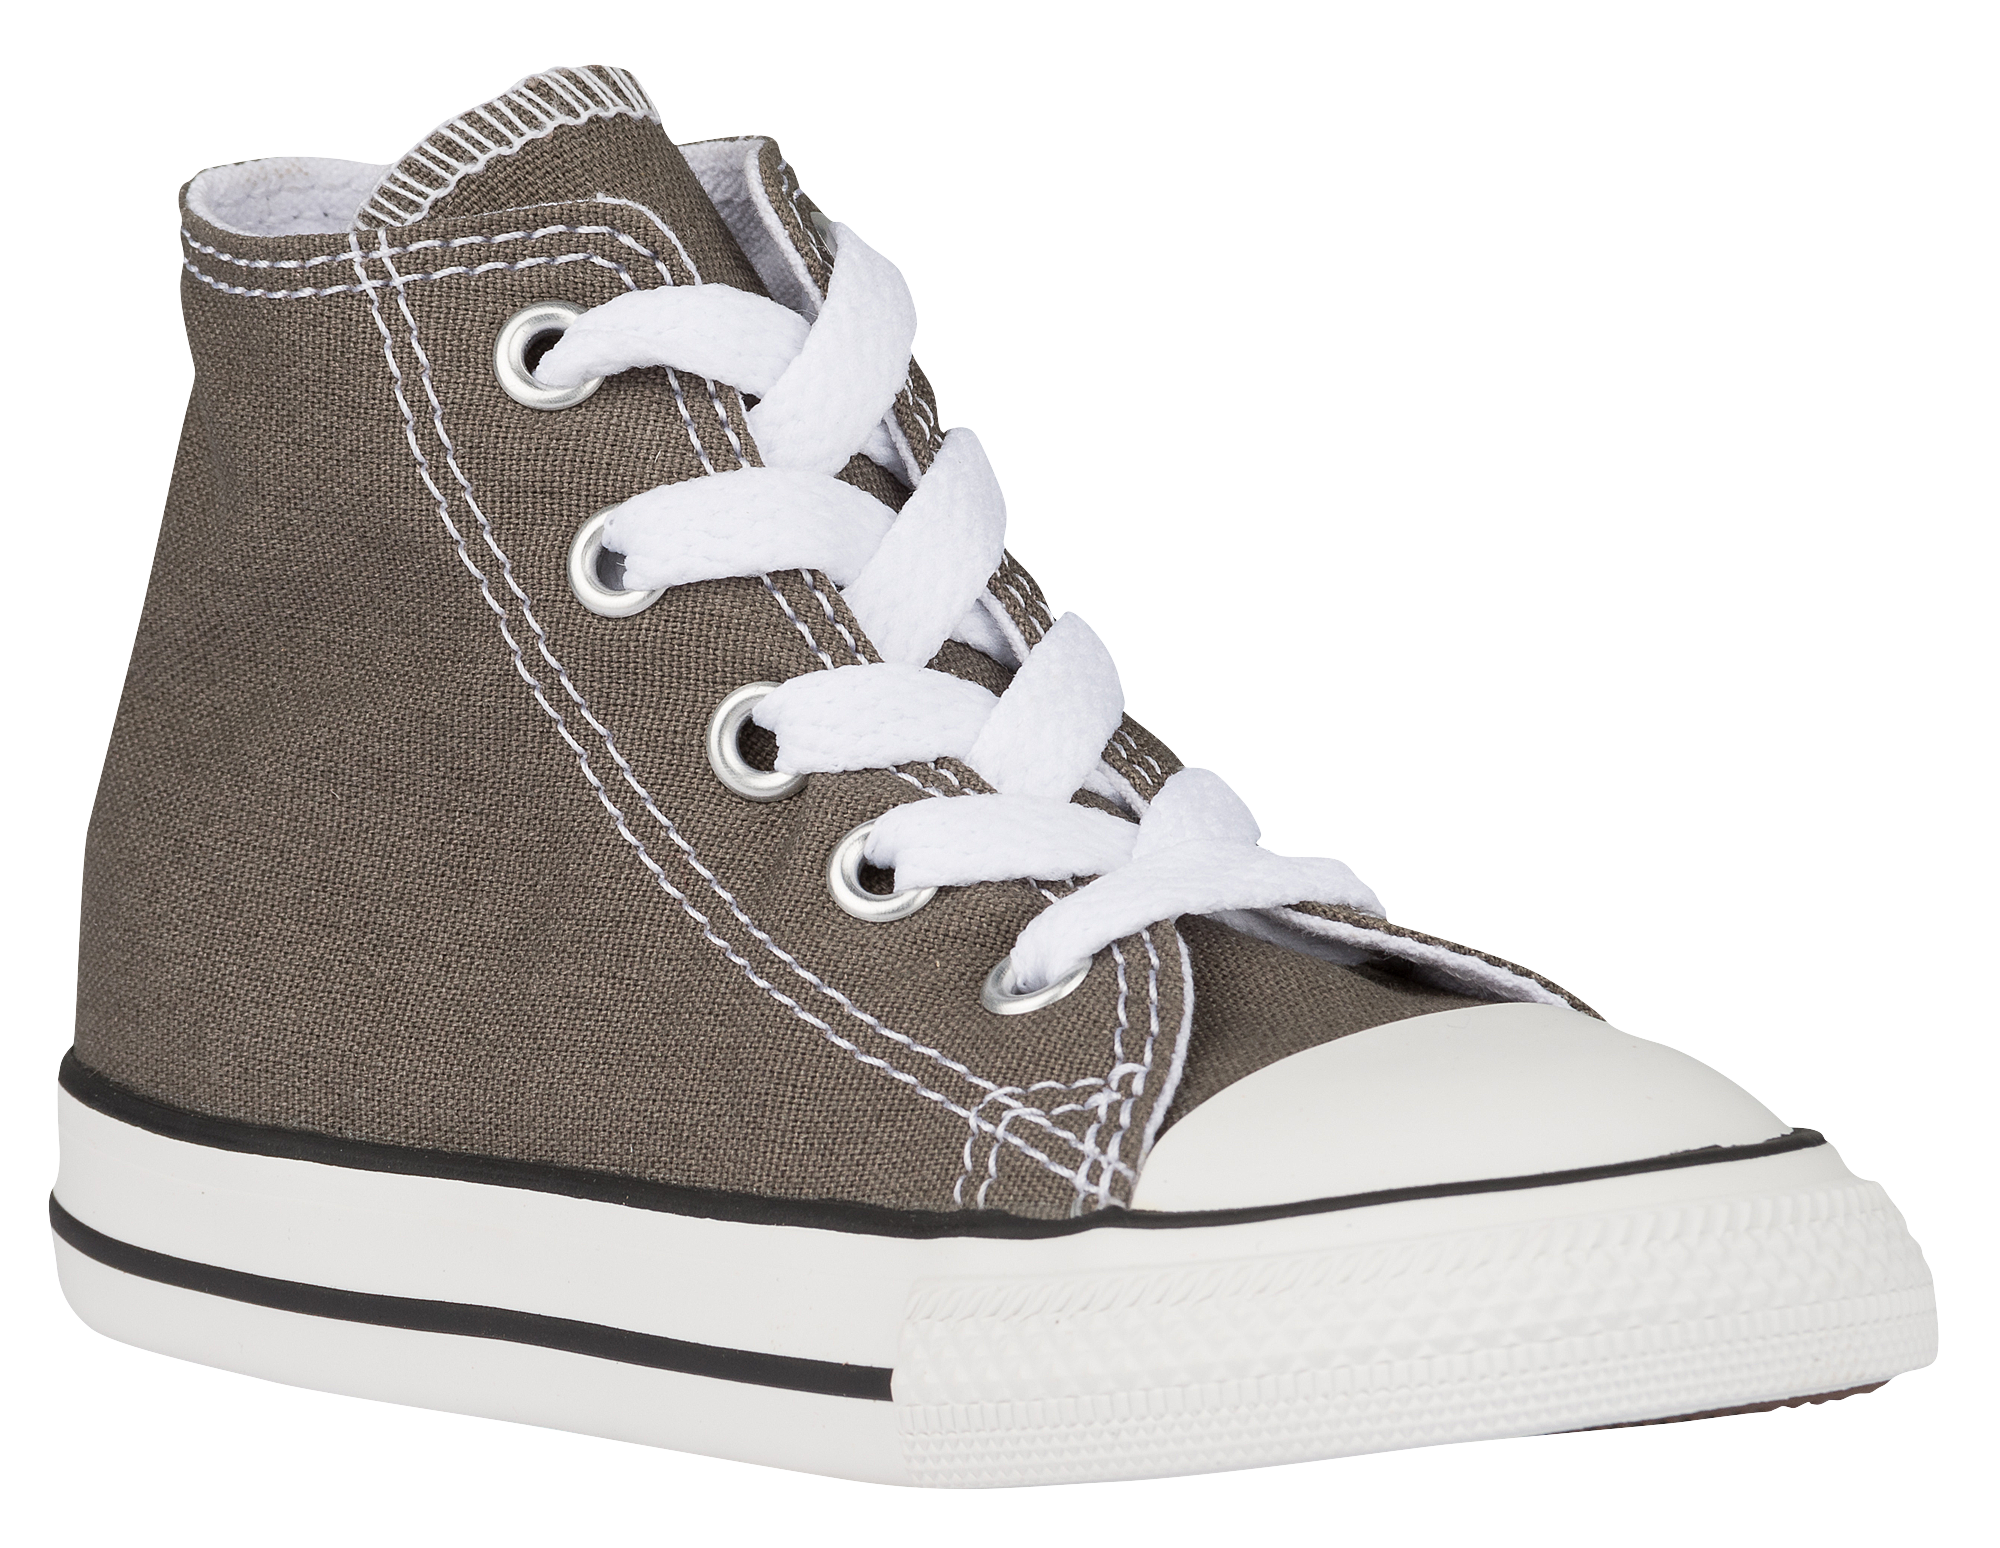 Kids Converse All Star Hi - Boys Toddler - Charcoal